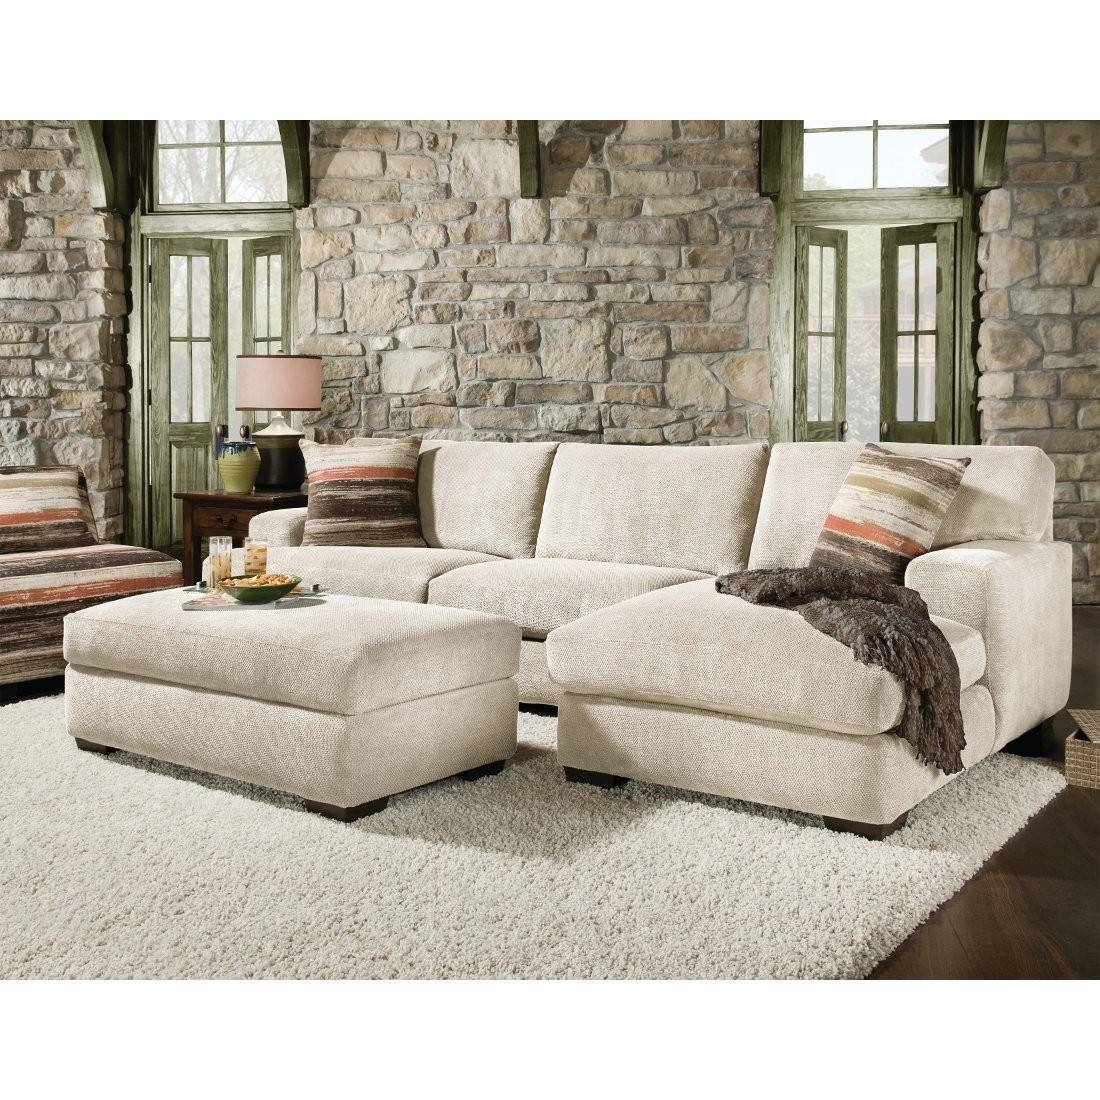 Wonderful Sectional Sofa With Chaise And Ottoman 61 For Your inside Gold Sectional Sofa (Image 25 of 25)